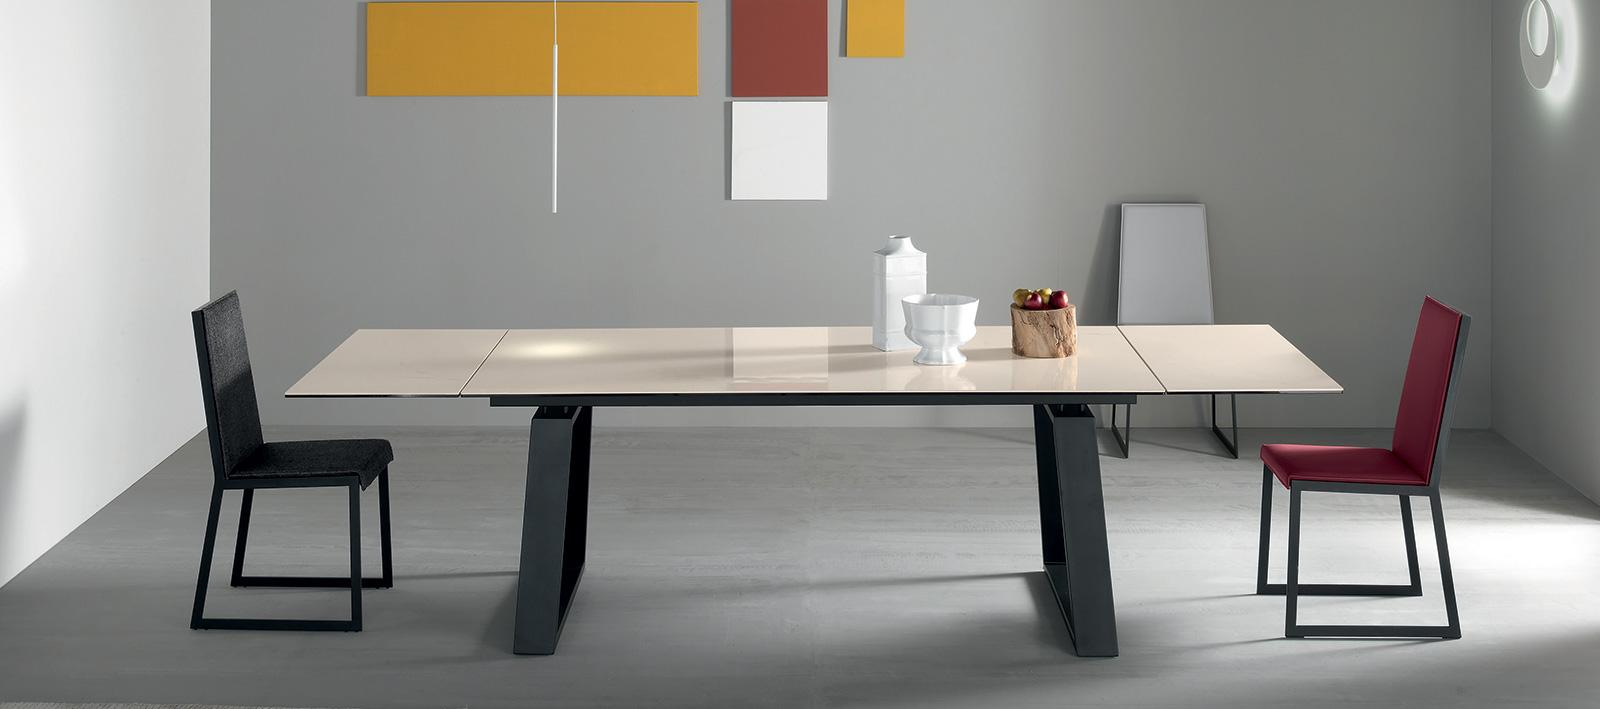 Table en c ramique extensible vente en ligne italy for Table moderne a rallonge